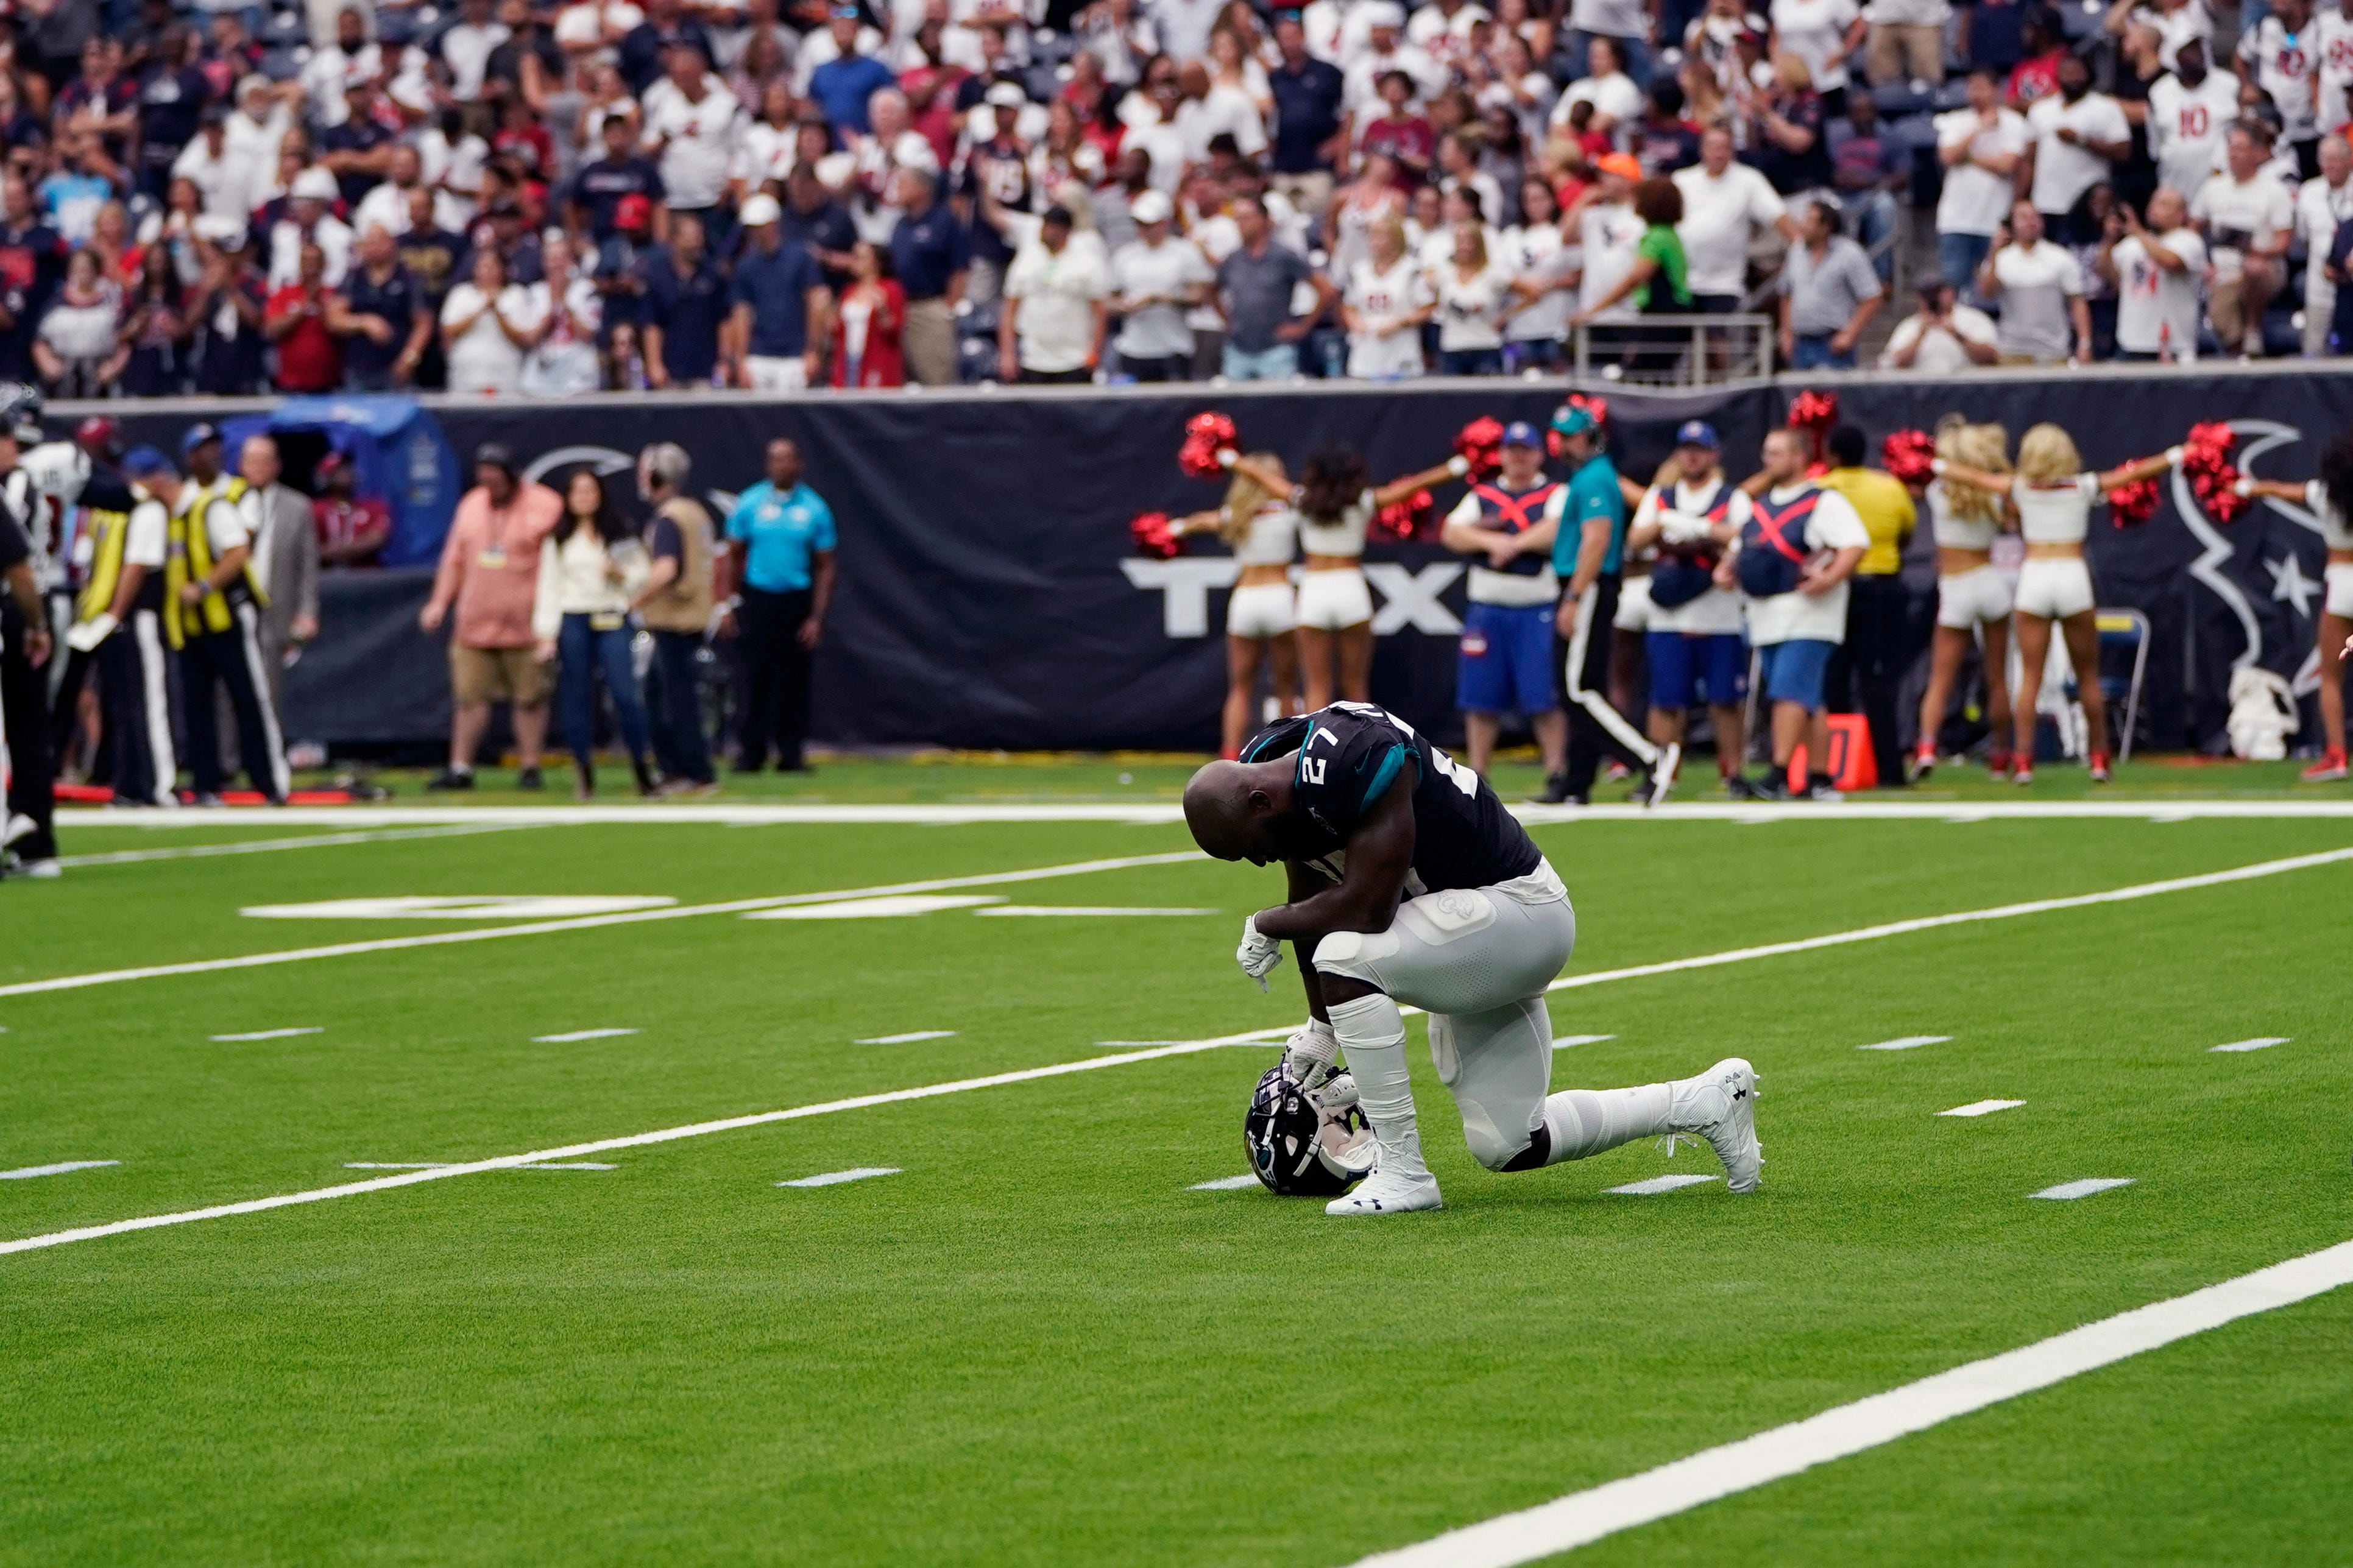 Texans stop Jags' 2-point conversion to get 13-12 win